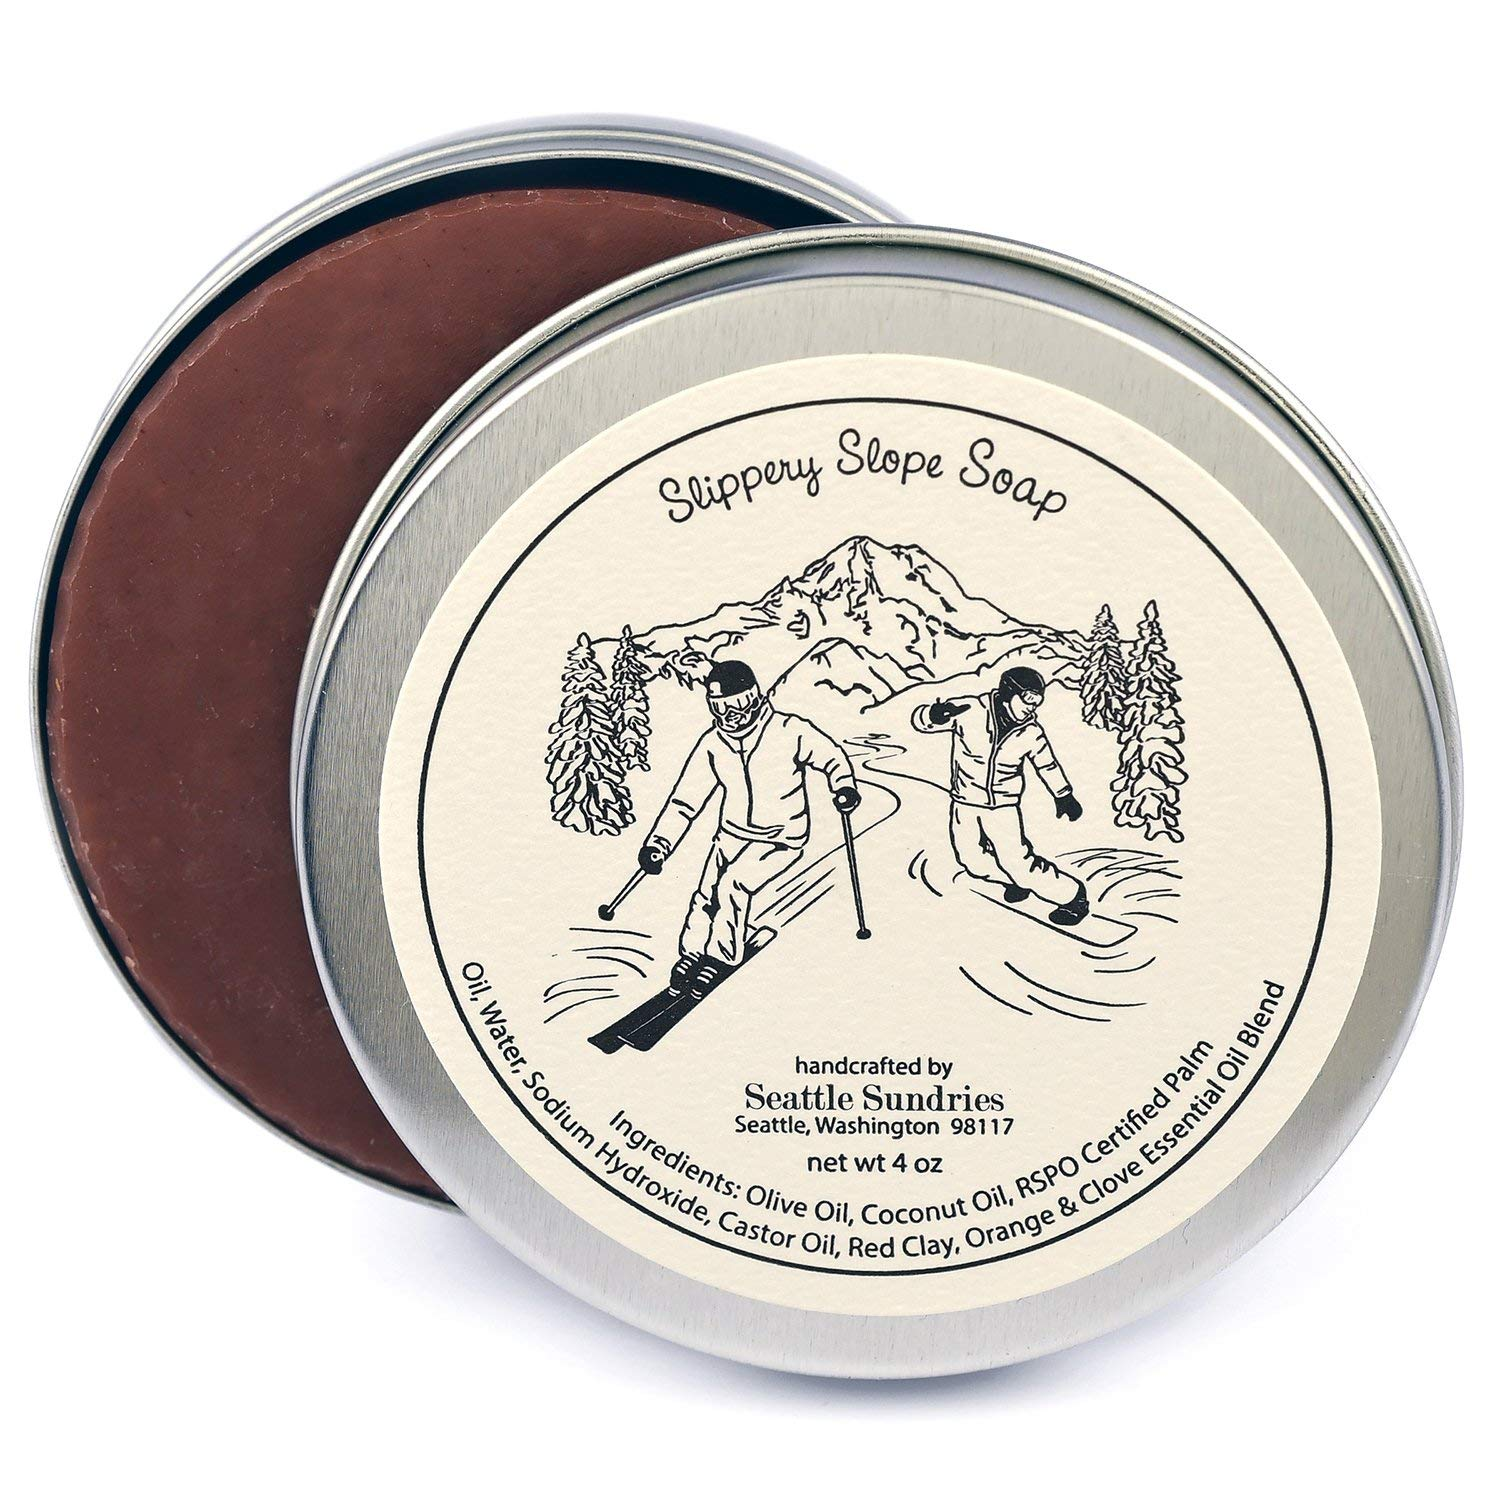 gifts-for-skiers-boot-soap